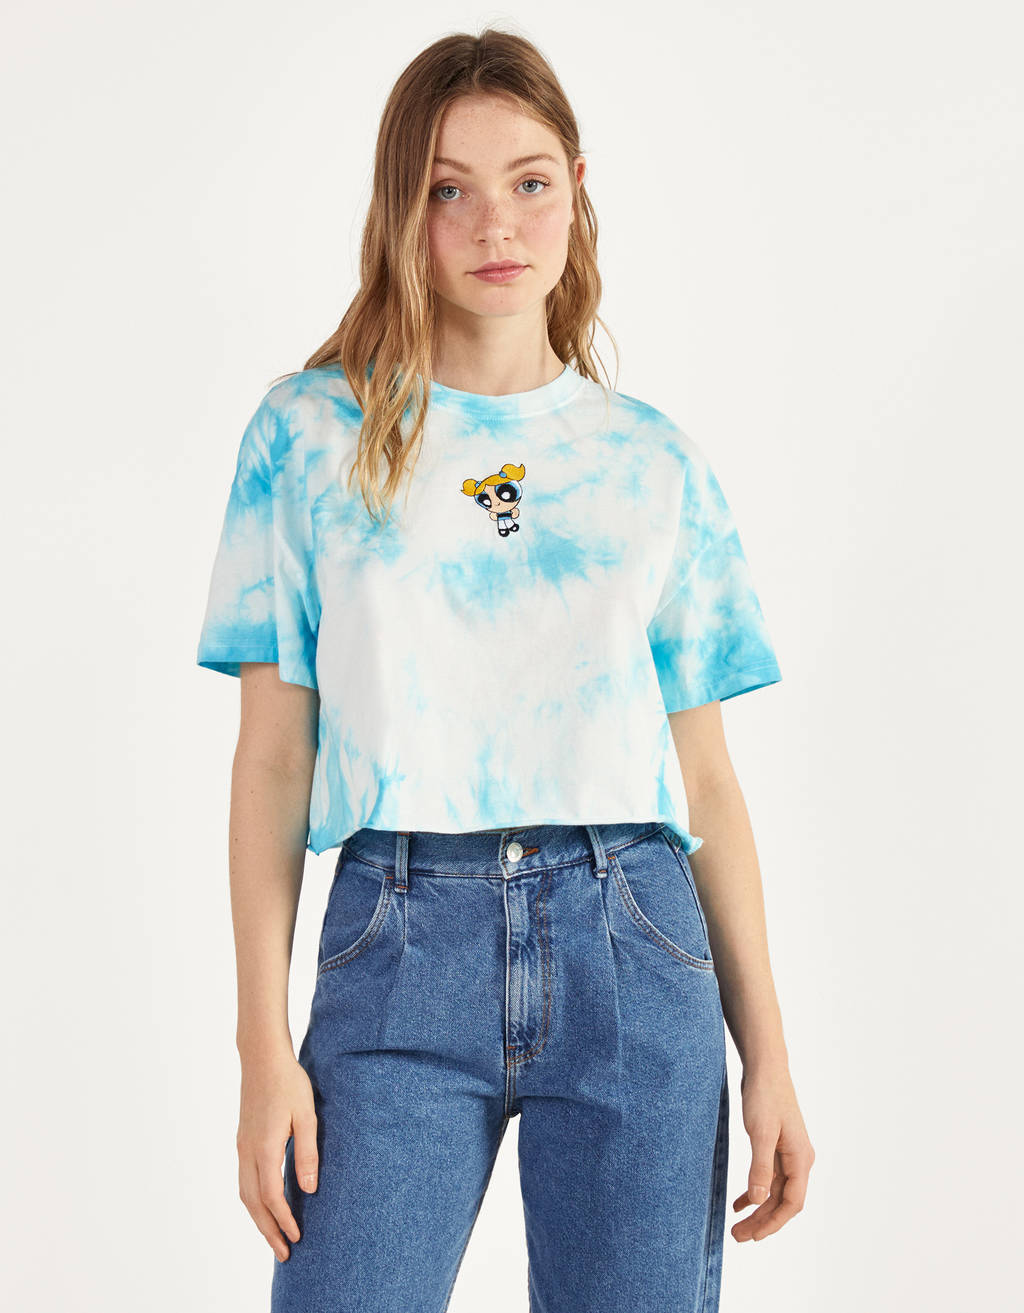 The Powerpuff Girls x Bershka majica s tie dye vzorcem